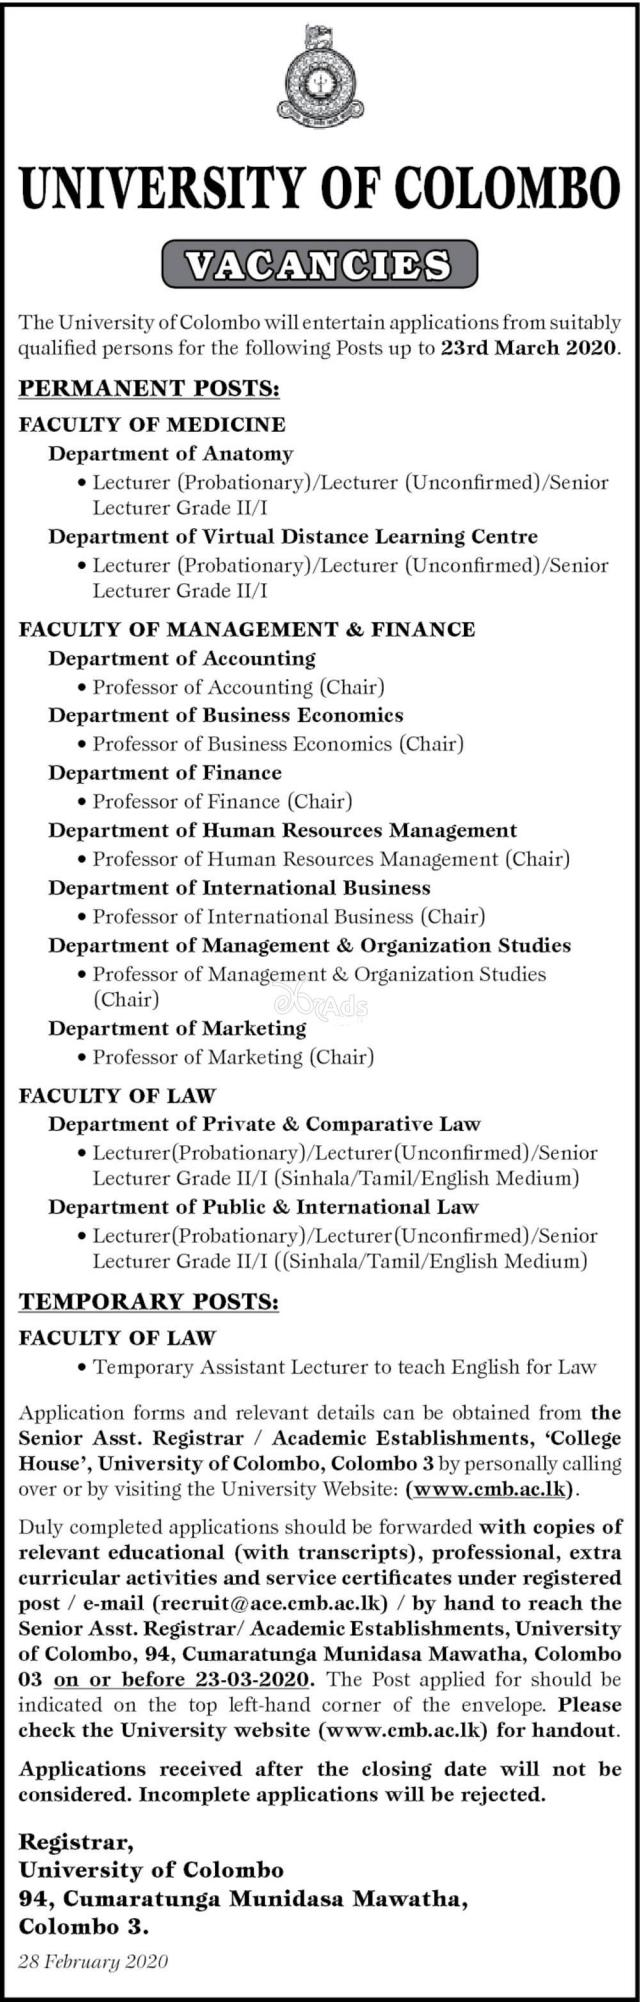 Professor, Senior Lecturer, Lecturer - University of Colombo